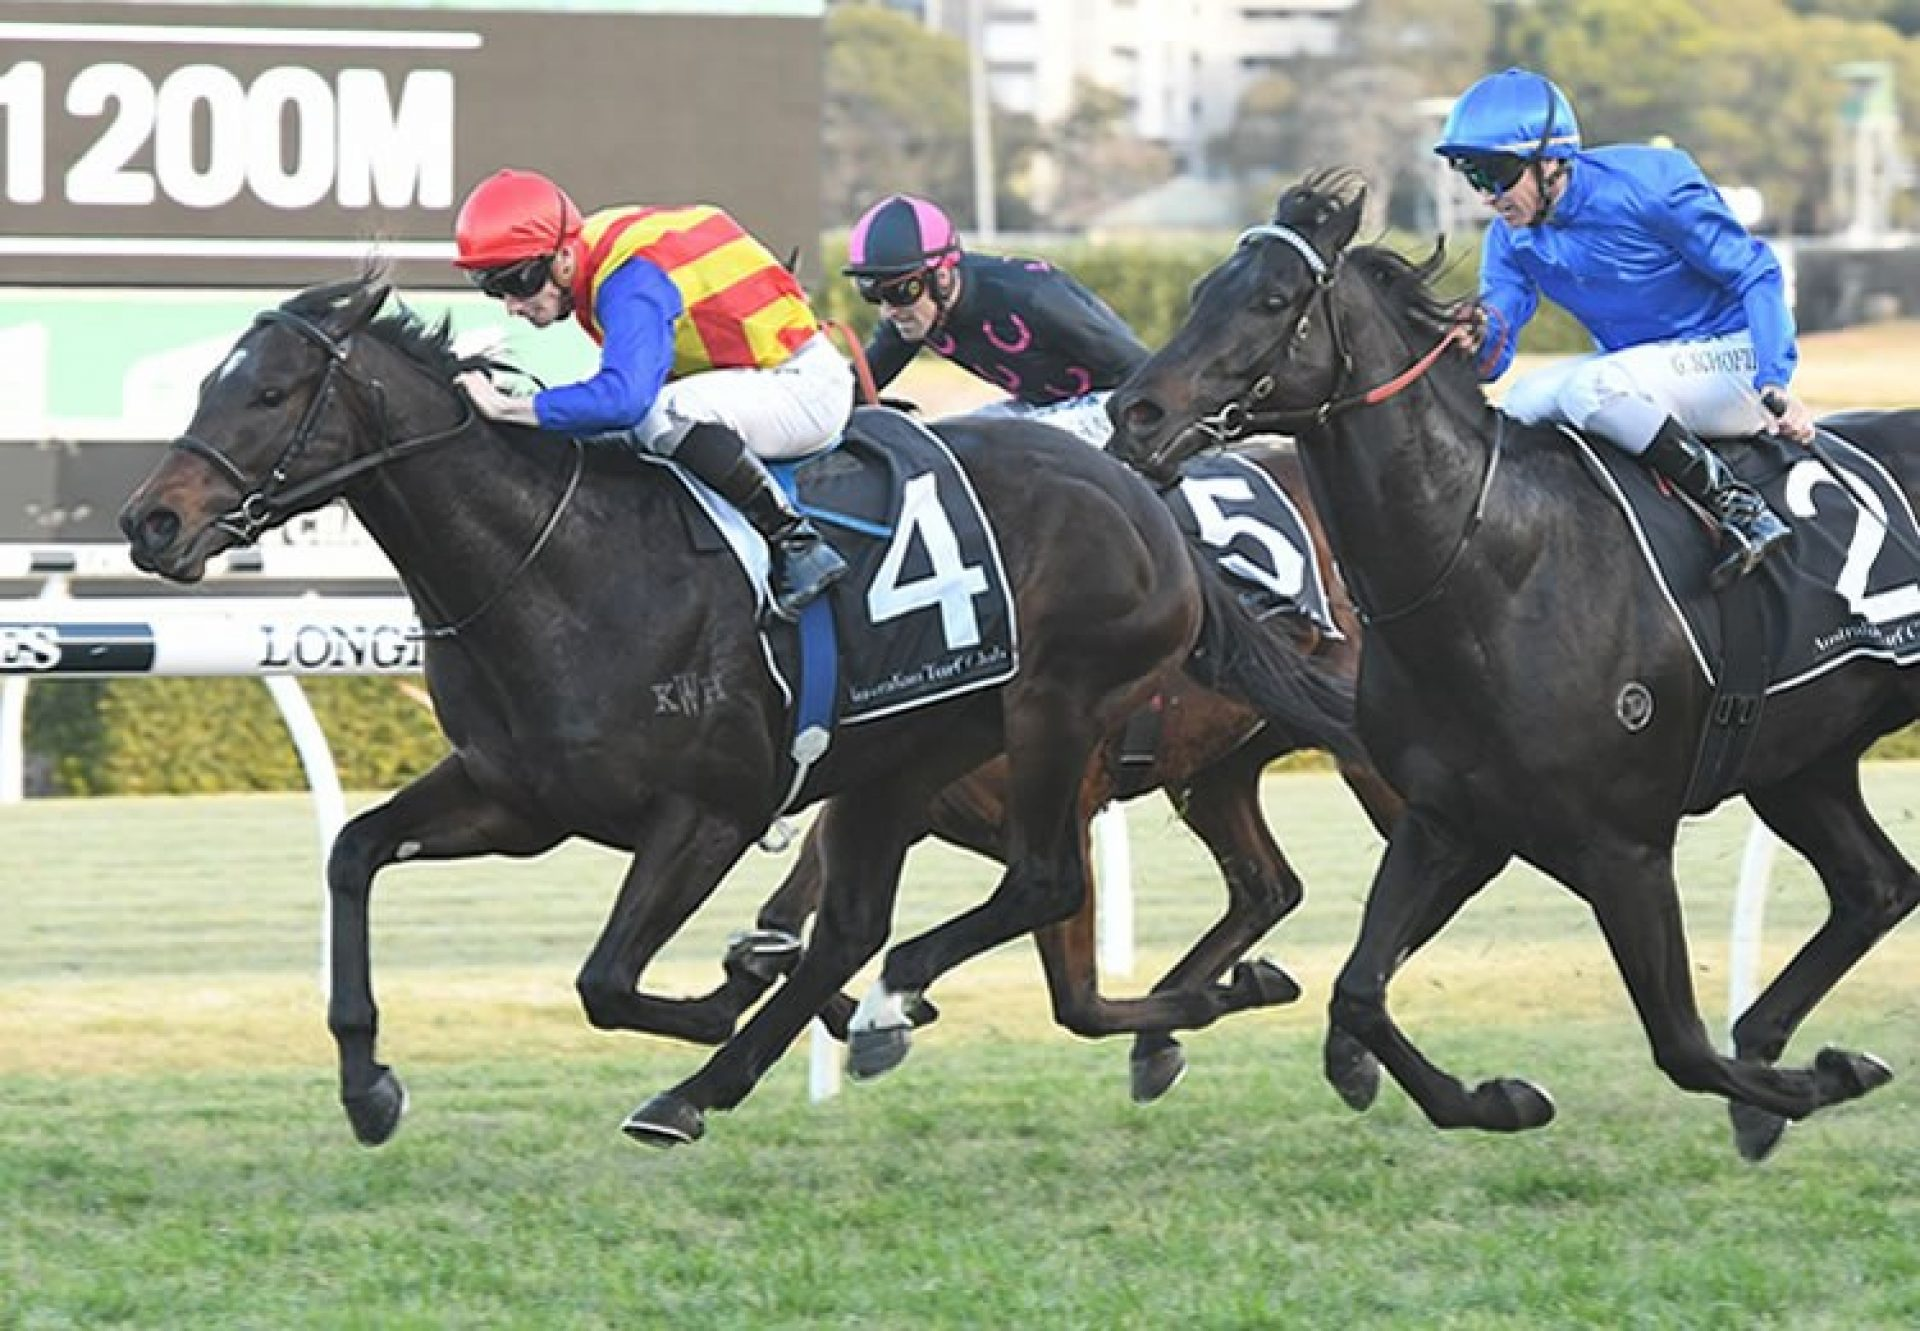 Pierata (Pierro) winning the G2 Missile Stakes at Randwick